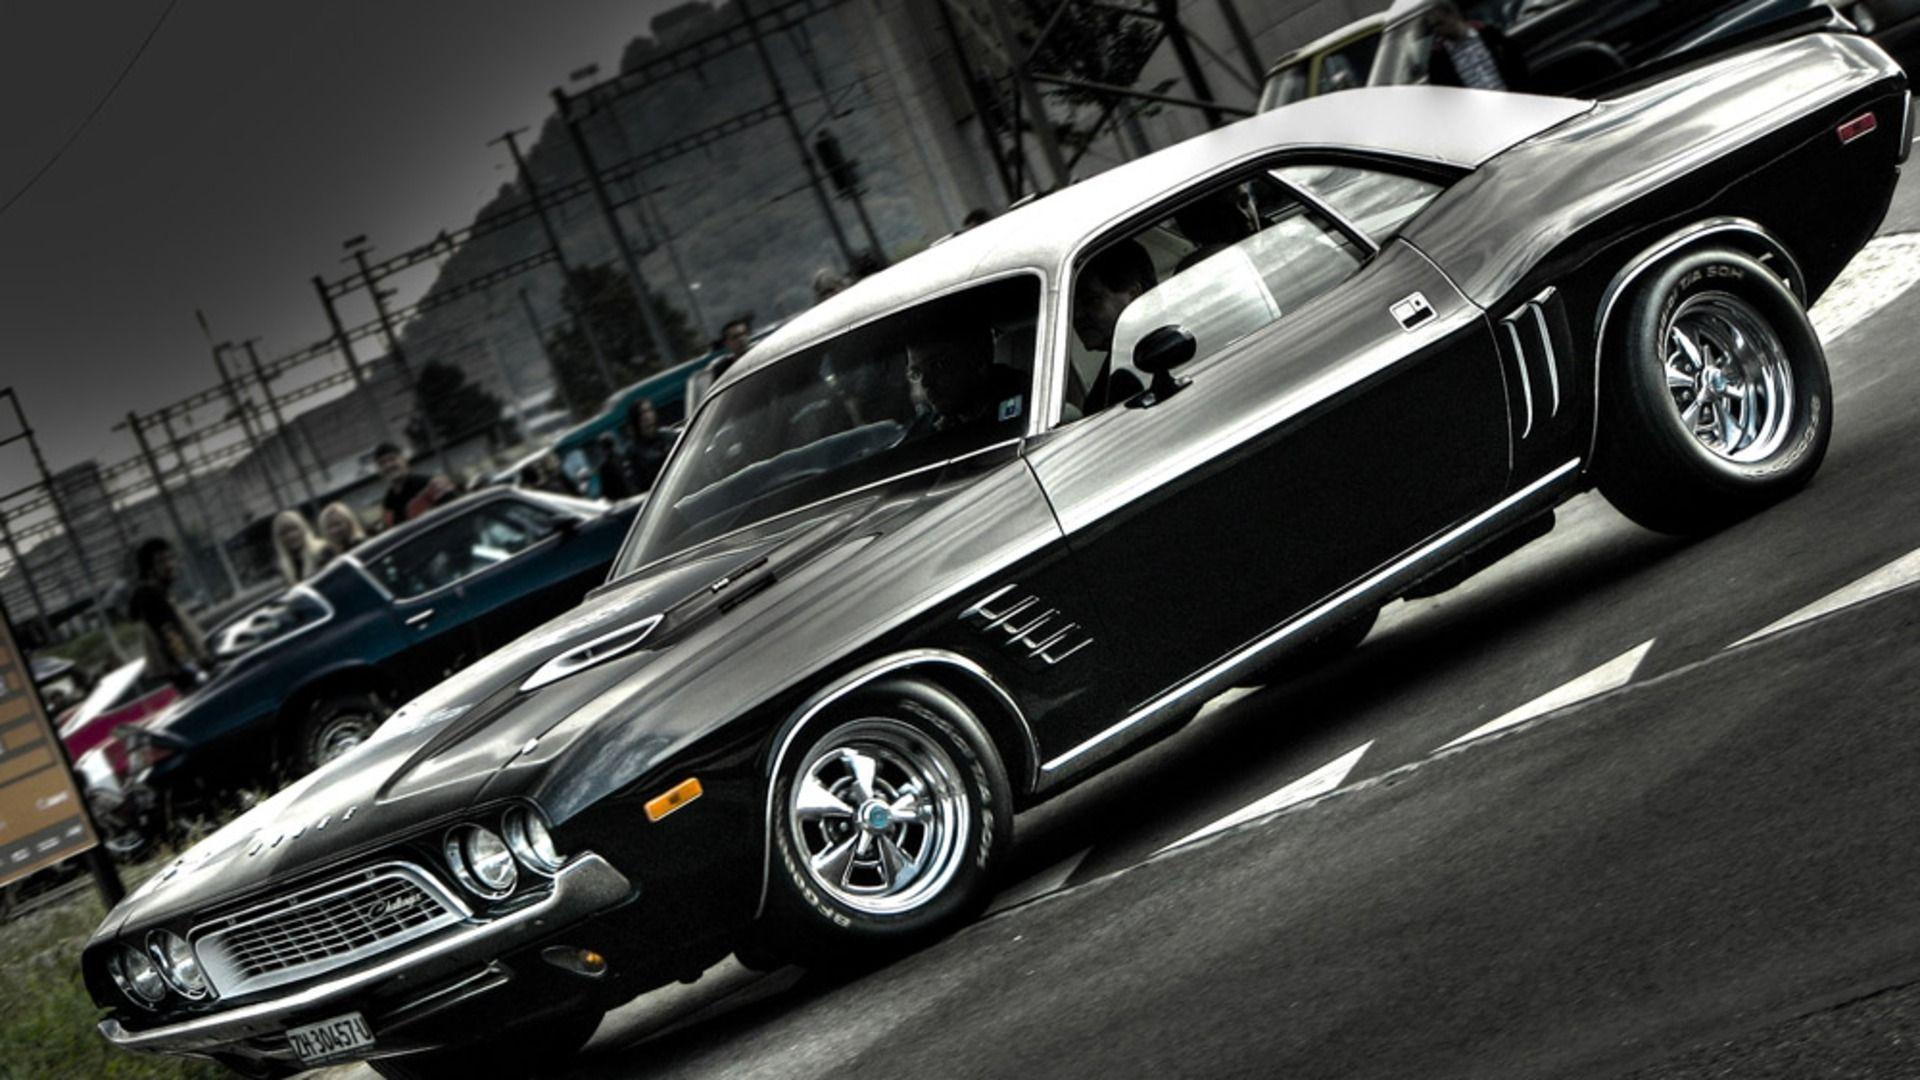 Australian Muscle Cars HD Wallpaper Download - TopCarPicture